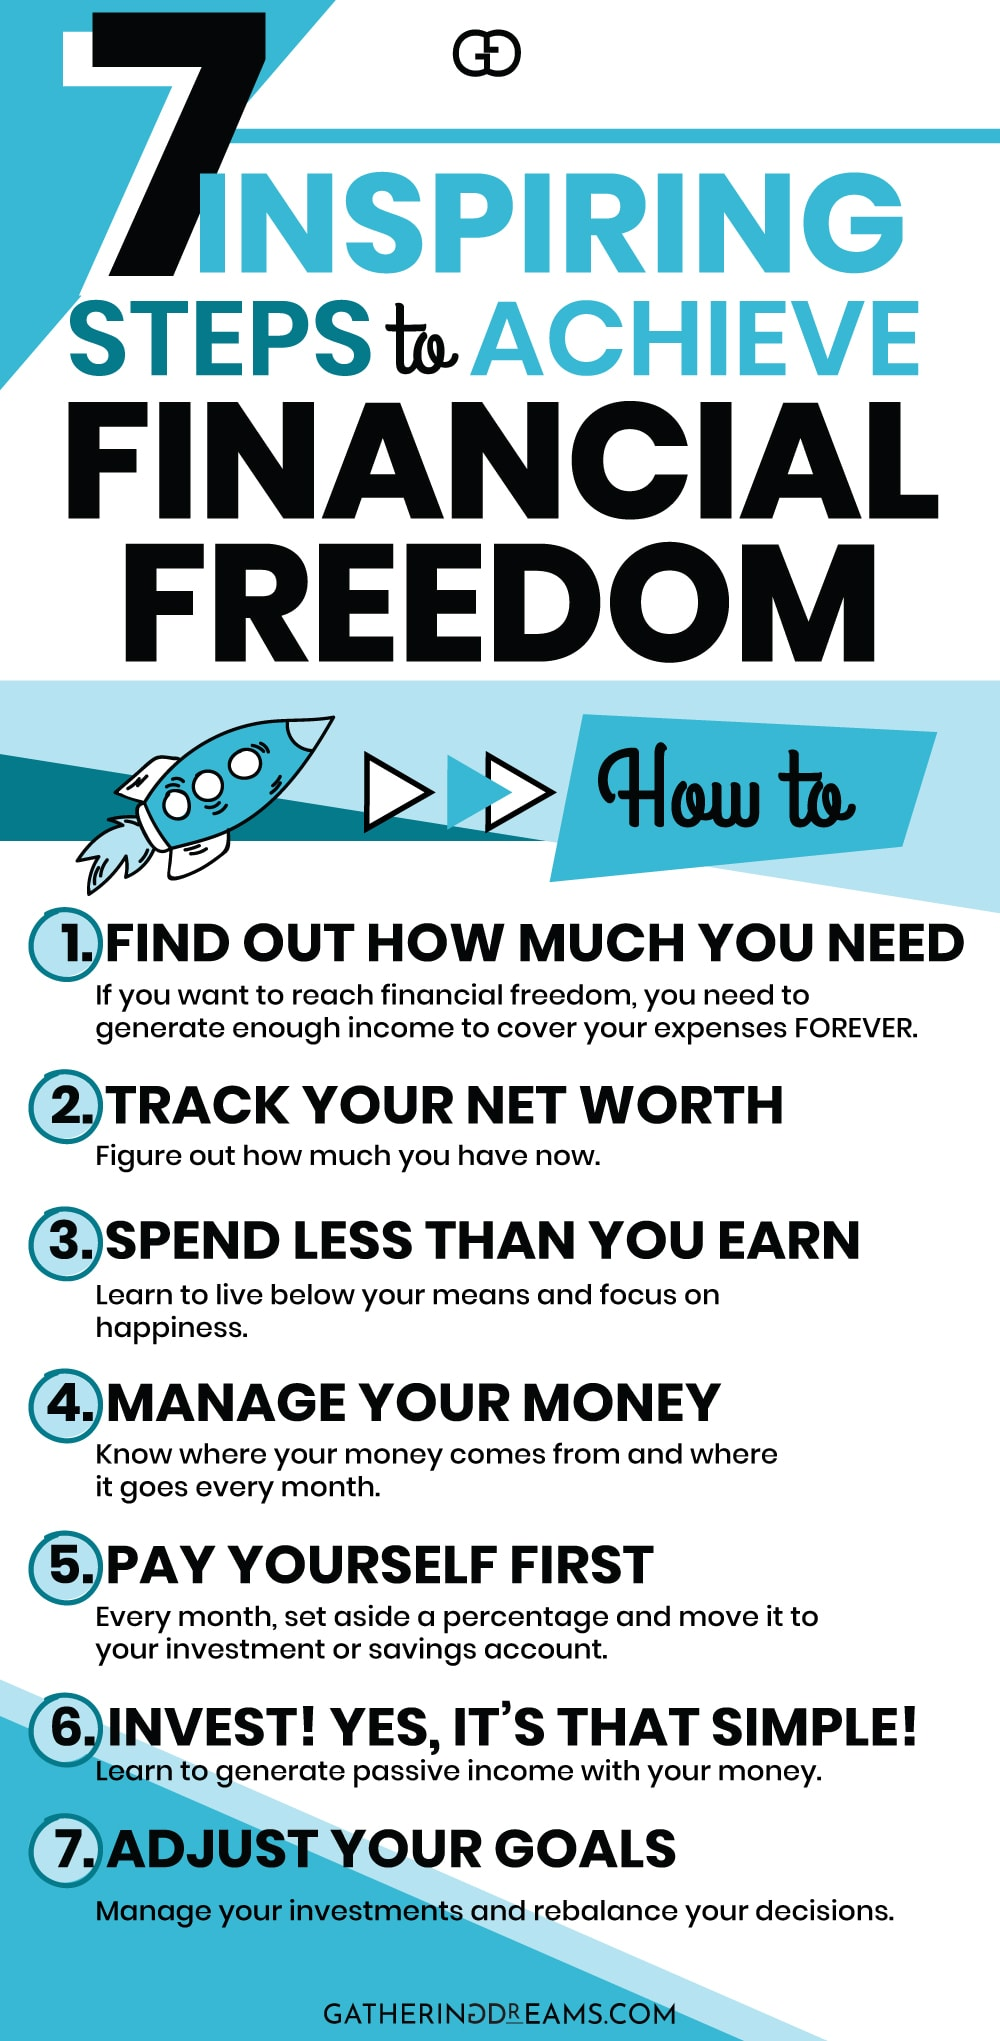 I used these essential amazing tips to achieve financial freedom! I am free to do what I want and money is not an issue anymore! By using passive income you can reach financial independence too! #financialfreedom #financialliteracy #passiveincome @gatheringdreams